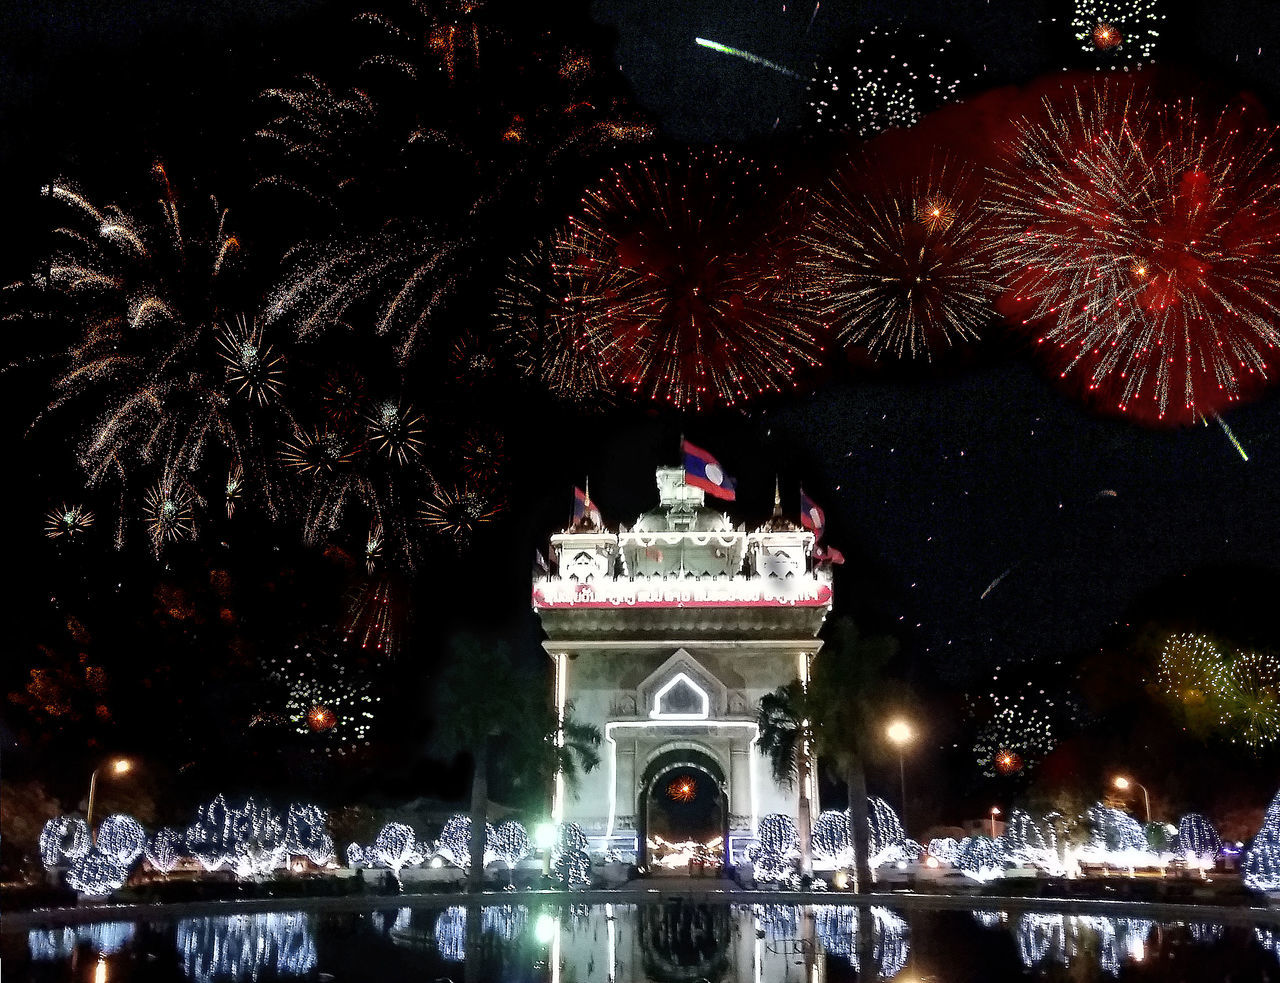 Tourist Attraction  Southeastasia Johnnelson Lifeasiseeit Vientiane Vientiane Laos Laospdr Red Sky Check This Out Night Lights Fire In The Sky Fireworks Patuxai Victory Monument Park (Patuxay)Vientaine Laos Patuxay Patuxaypark Explosions In The Sky Southeast Asia Celebration